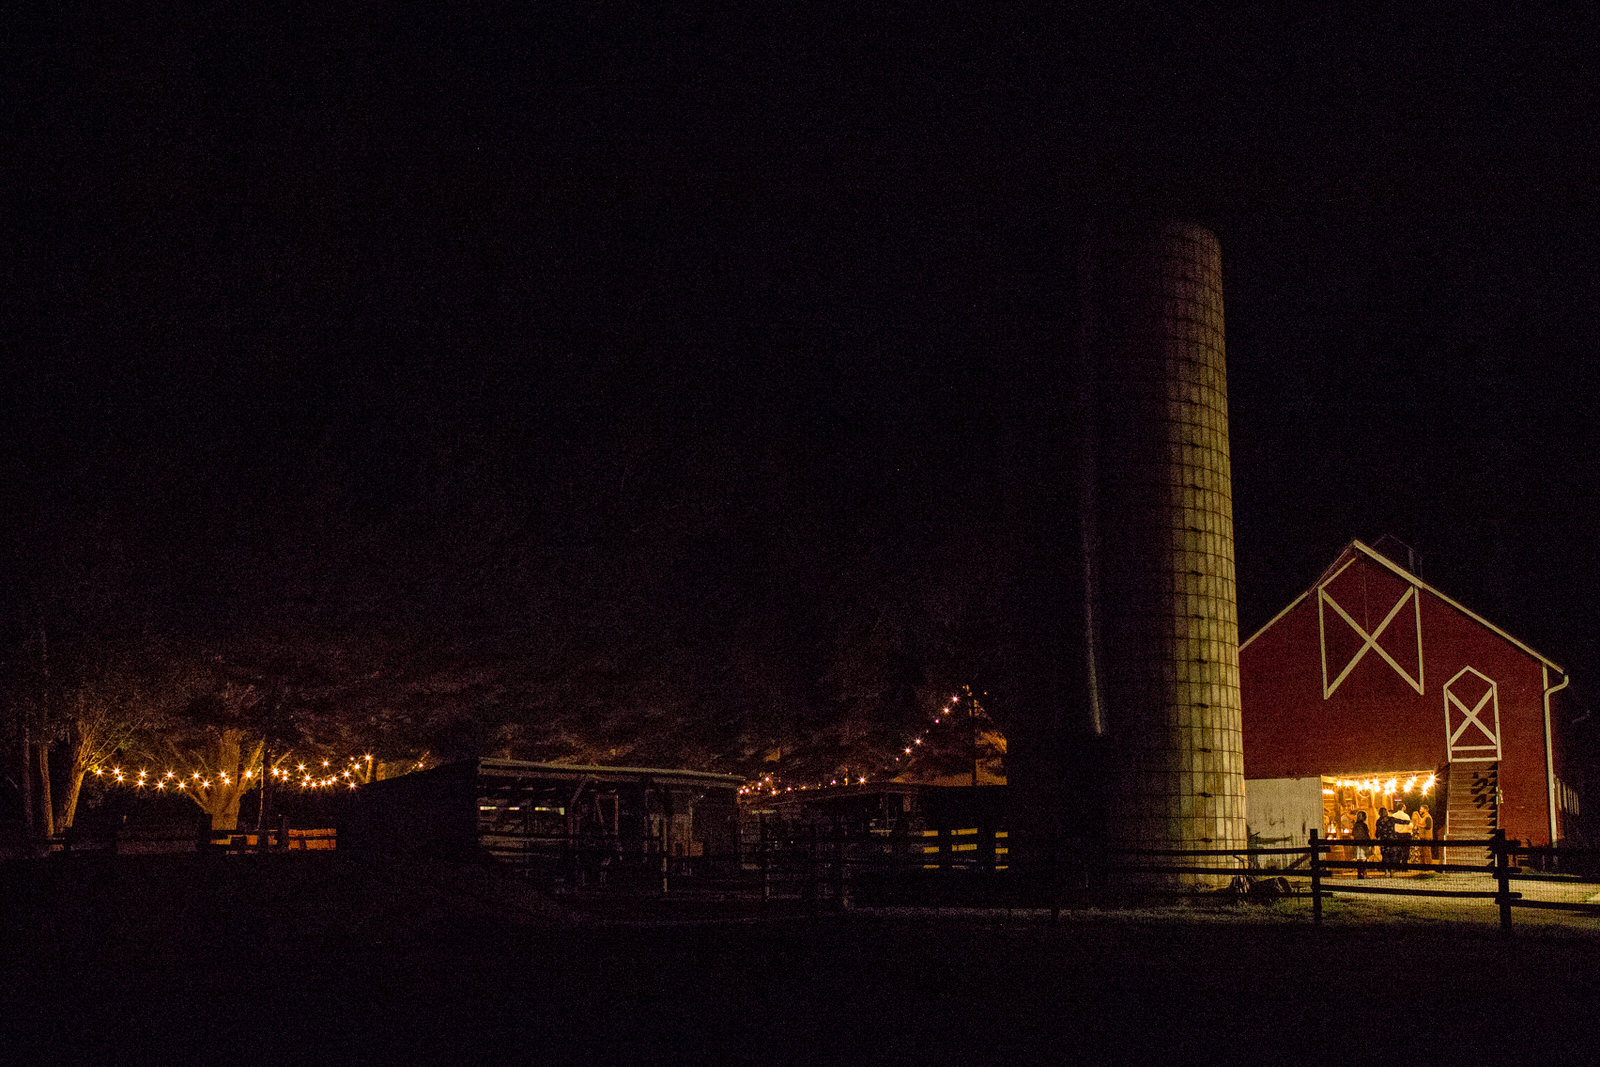 shot of milston well farm at night, showing a red barn where bistro lights hang inside and a file and fences out front